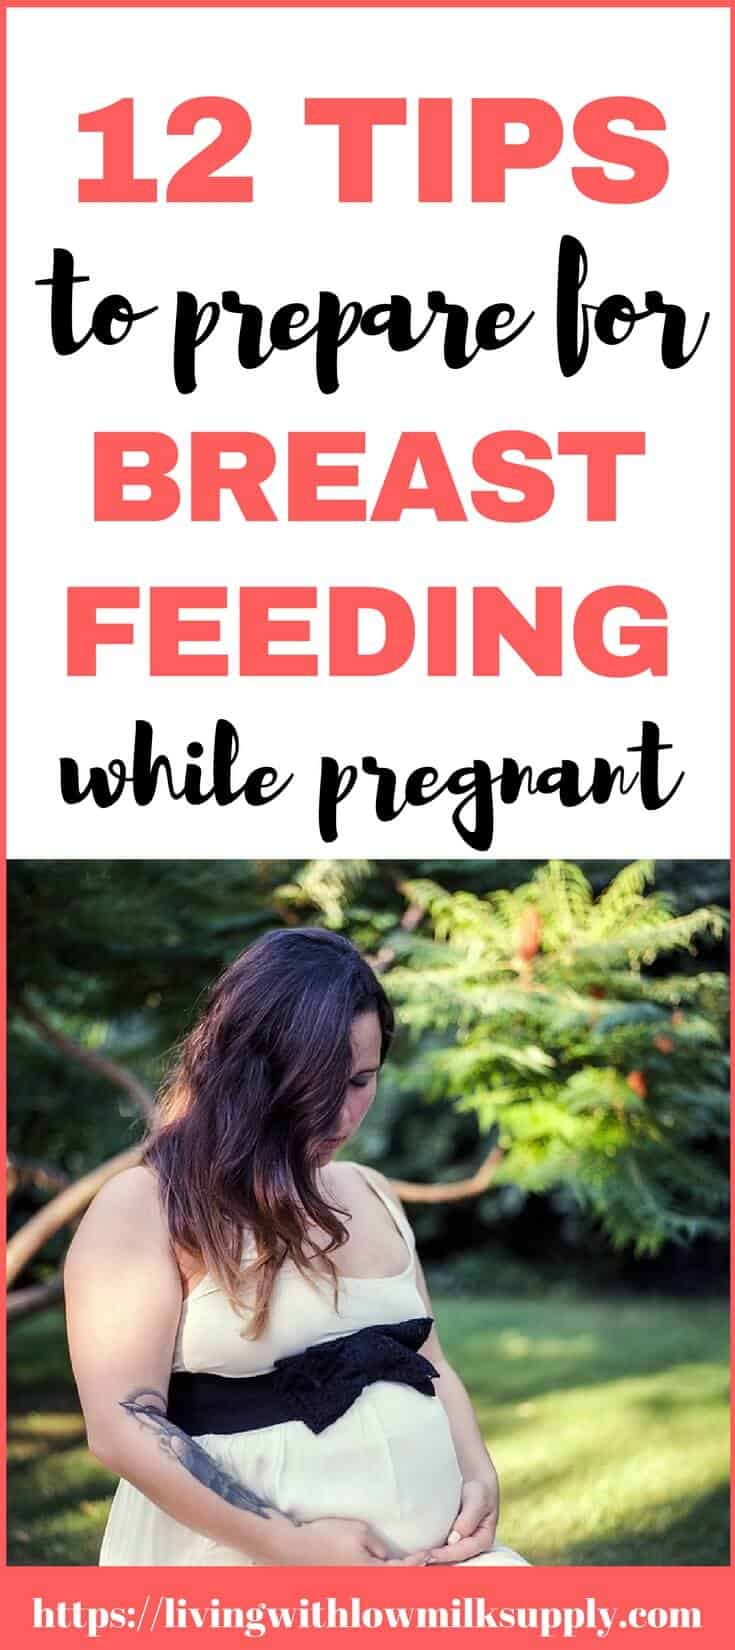 Are you wondering how to prepare for breastfeeding while pregnant? This article discusses 12 actionable tips that you can do to increase your chance of breastfeeding success, even before your baby arrives. #howtoprepareforbreastfeedingwhilepregnant #breastfeedingtipsfornewmoms